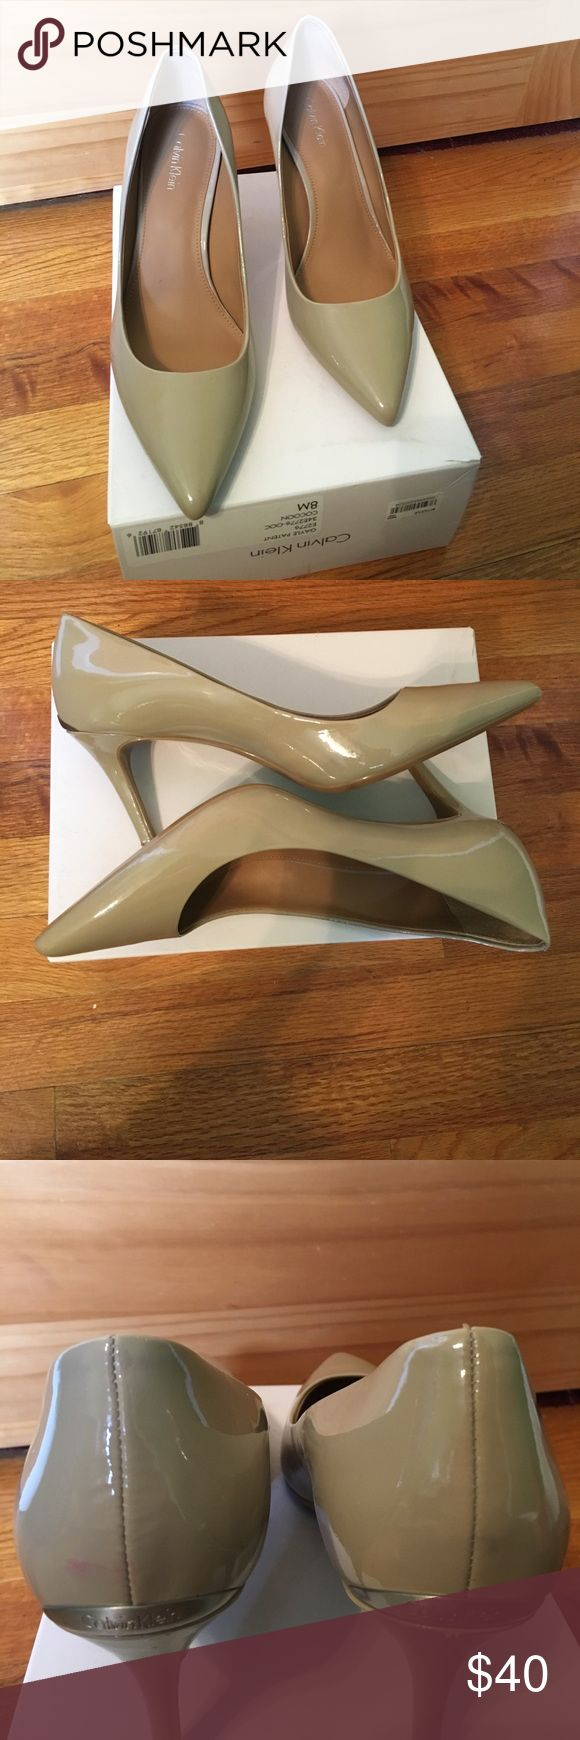 SALE ✨ Calvin Klein Pointed Toe Heels Only worn twice. These heels are classy and professional for multiple occasions. There are minor heel defects and slight pink staining as pictured (the pink coloration shown in the last pic). You can't tell when they're on but they are priced accordingly for your convenience 😊 Calvin Klein Shoes Heels